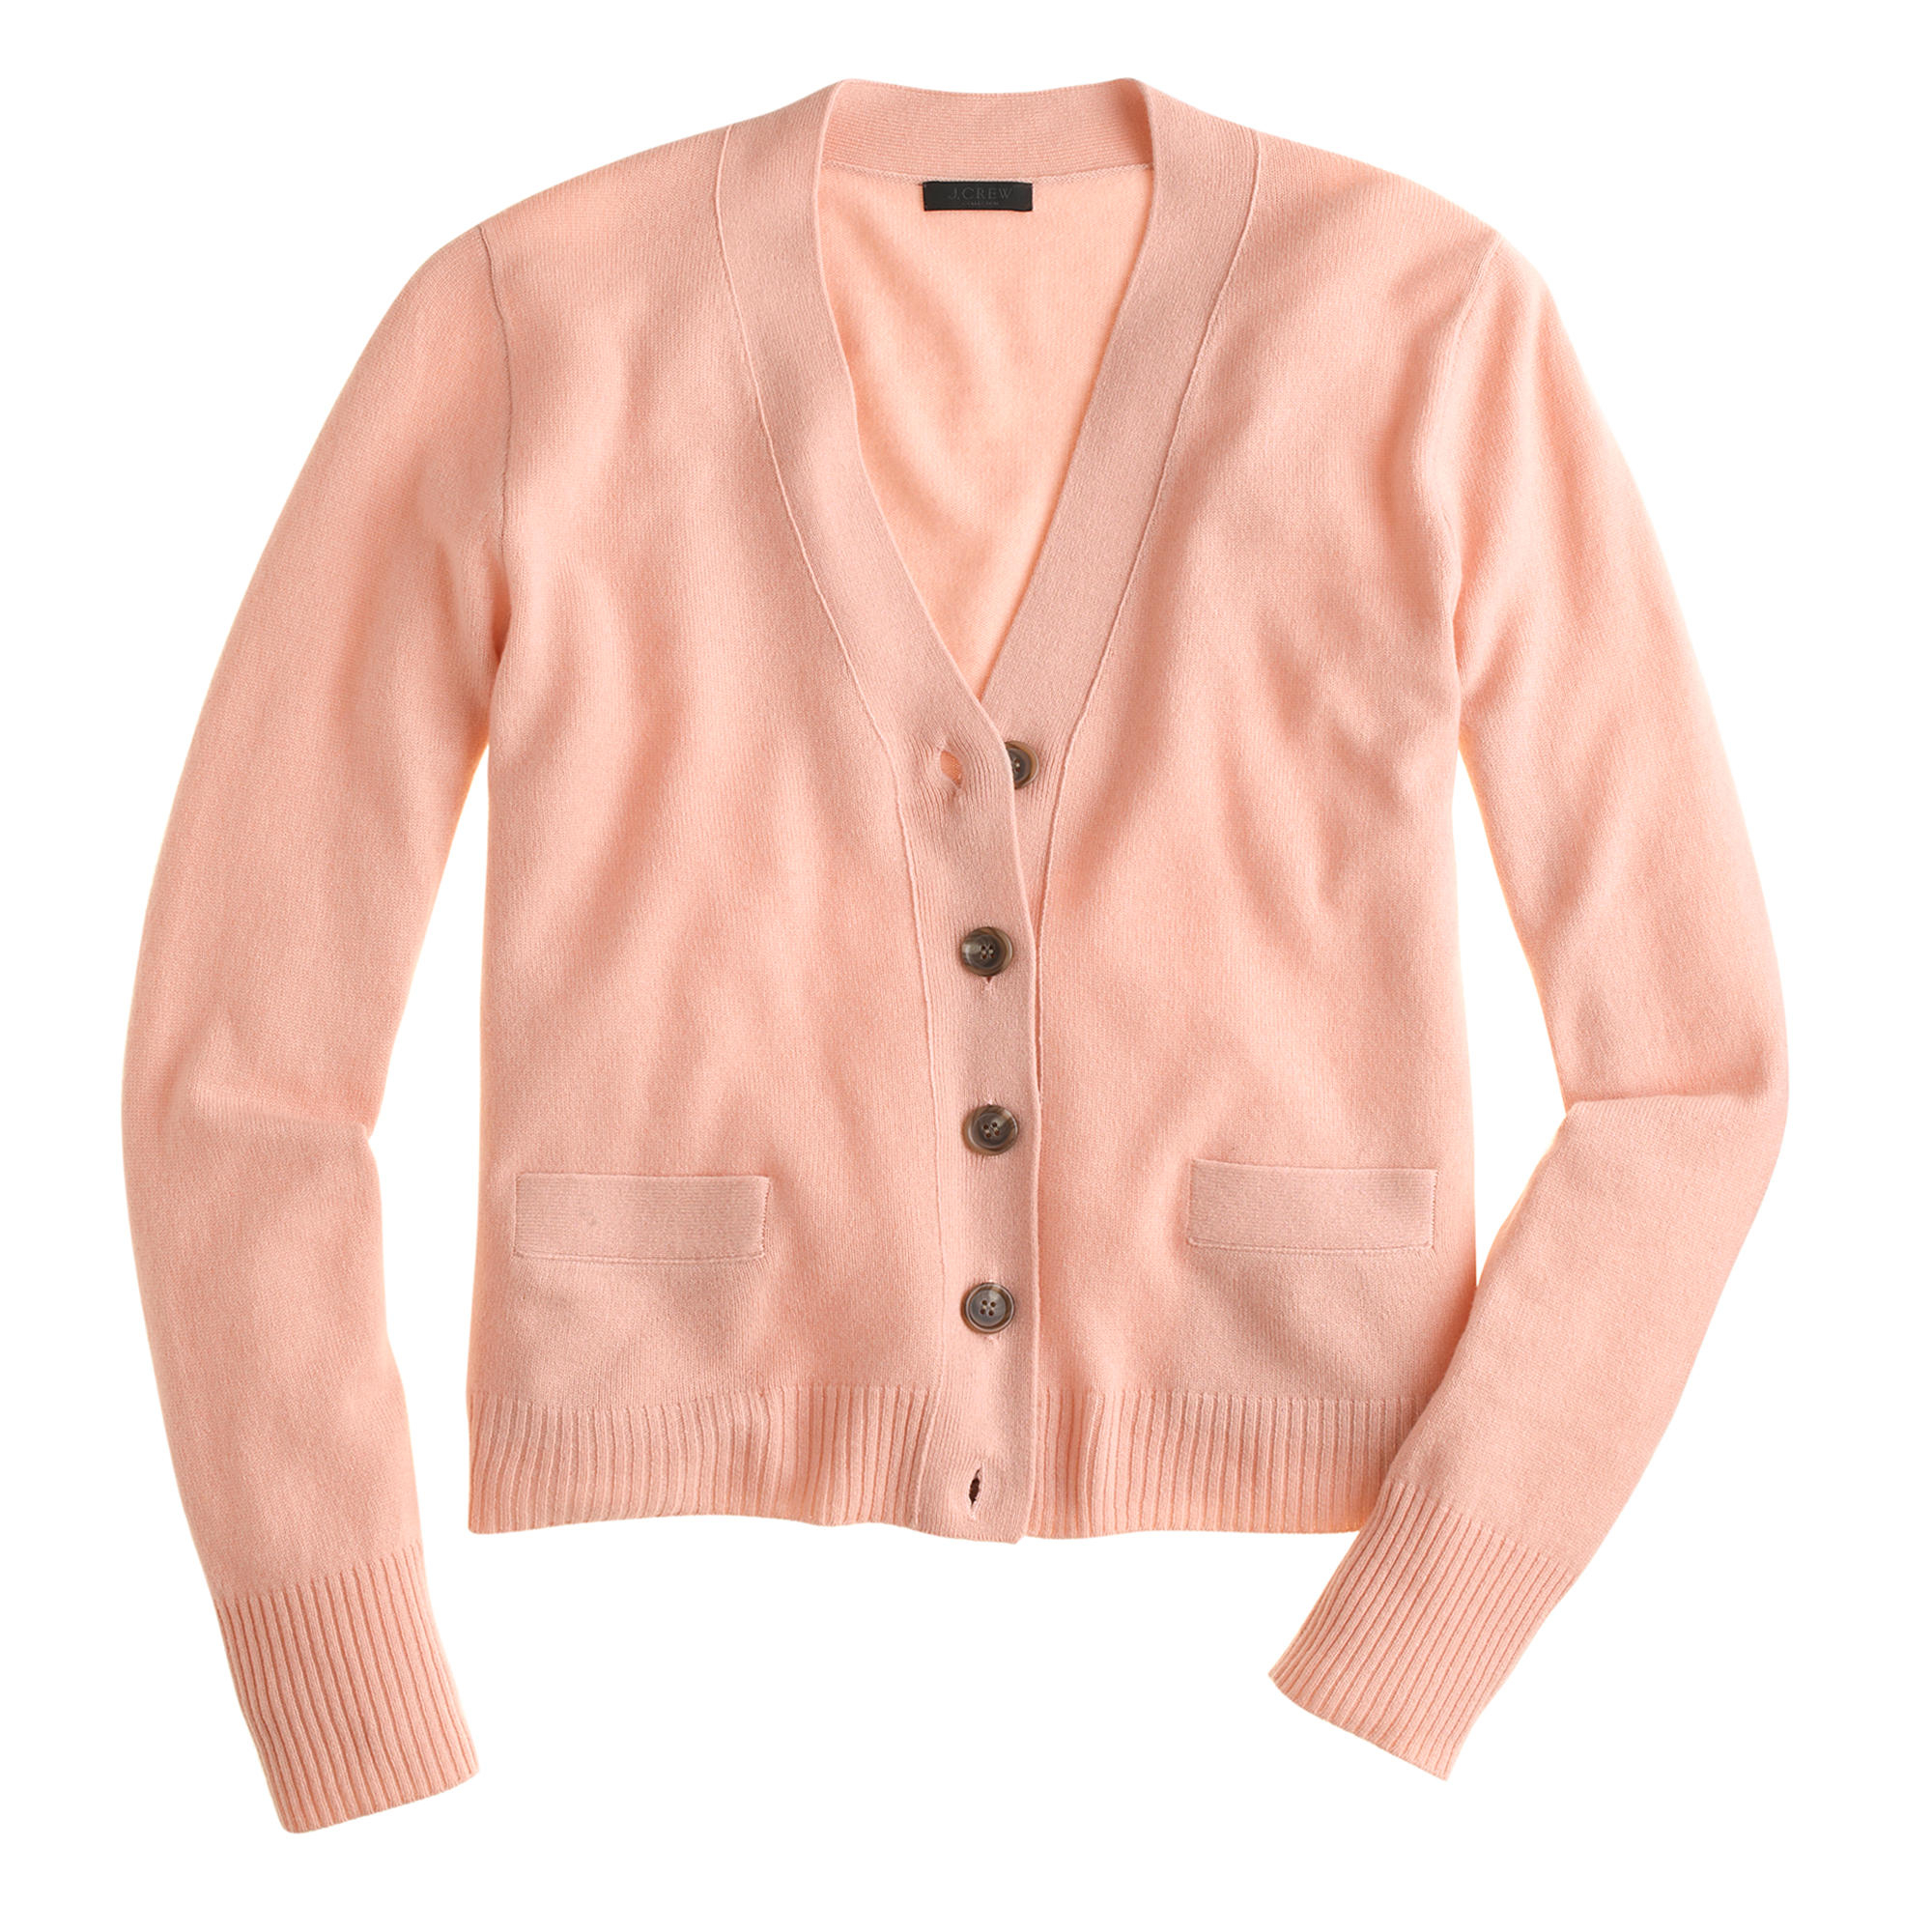 J.crew Petite Collection Cashmere V-neck Cardigan Sweater in ...